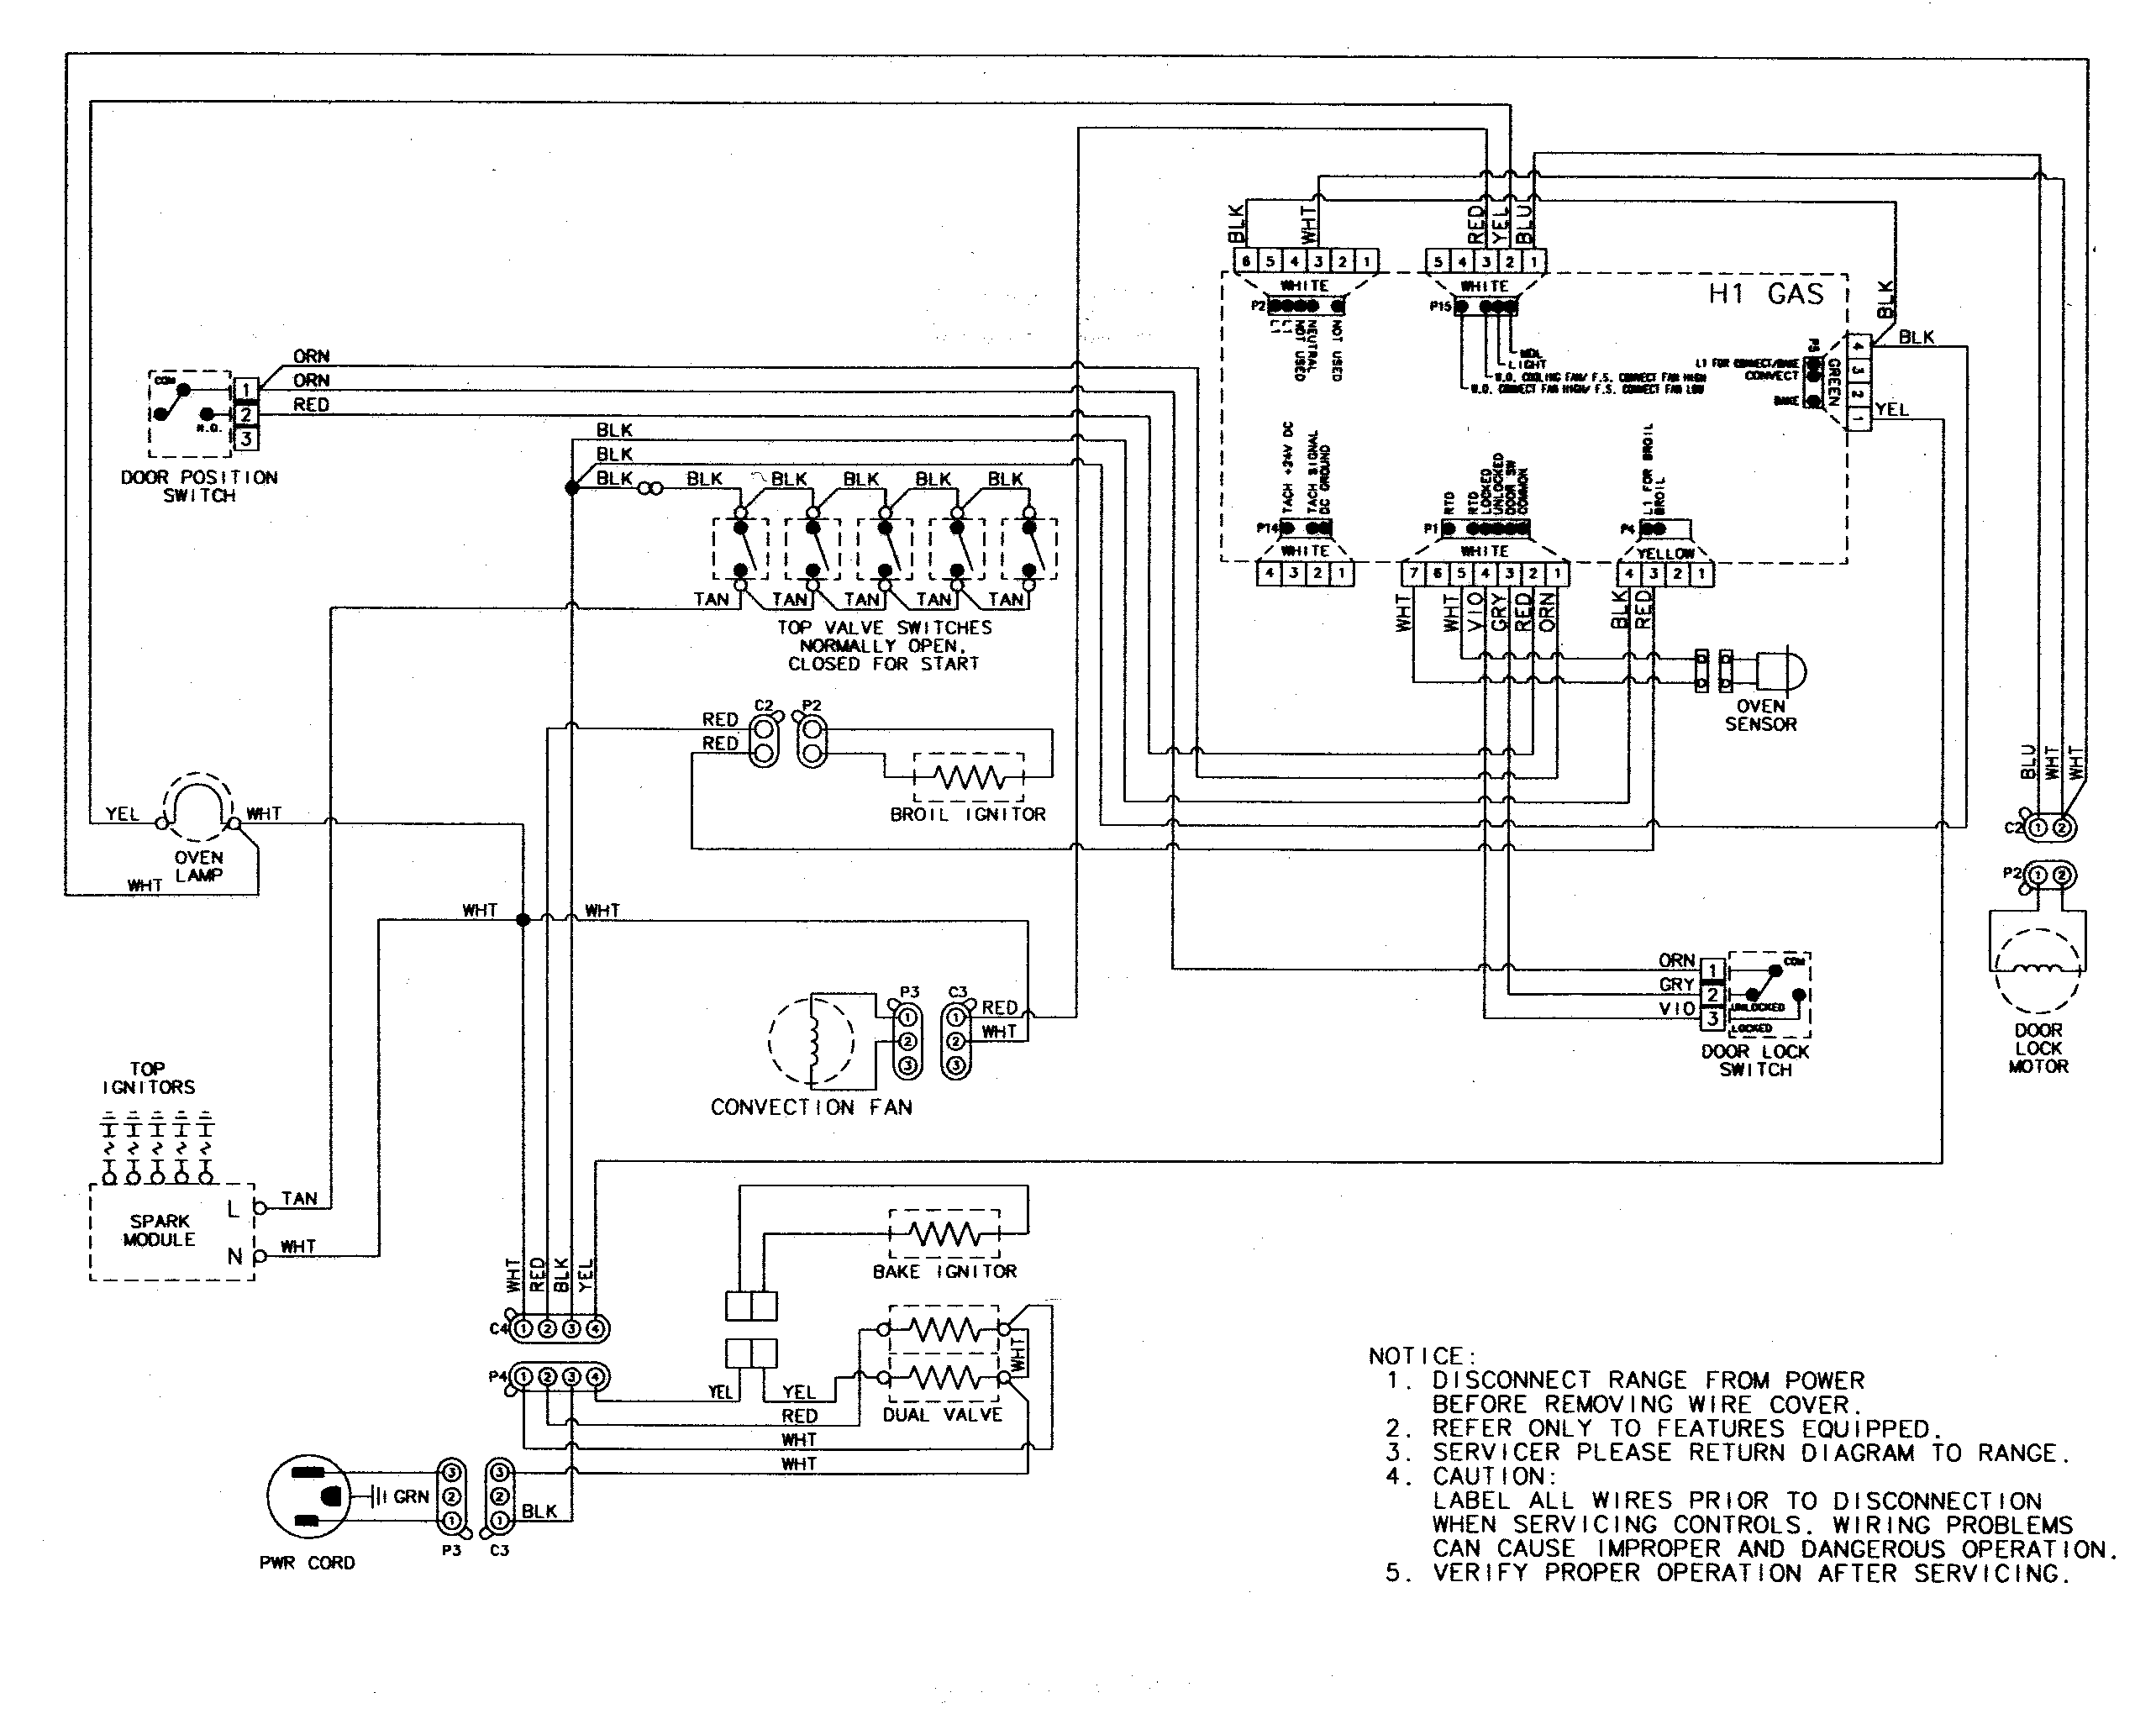 ge refrigerator wiring diagram qw davidforlife de \u2022 whirlpool ice maker schematic ge refrigerator control board wiring diagram wiring library rh 50 pafoseuropedirect eu ge refrigerator wiring diagram ice maker general electric